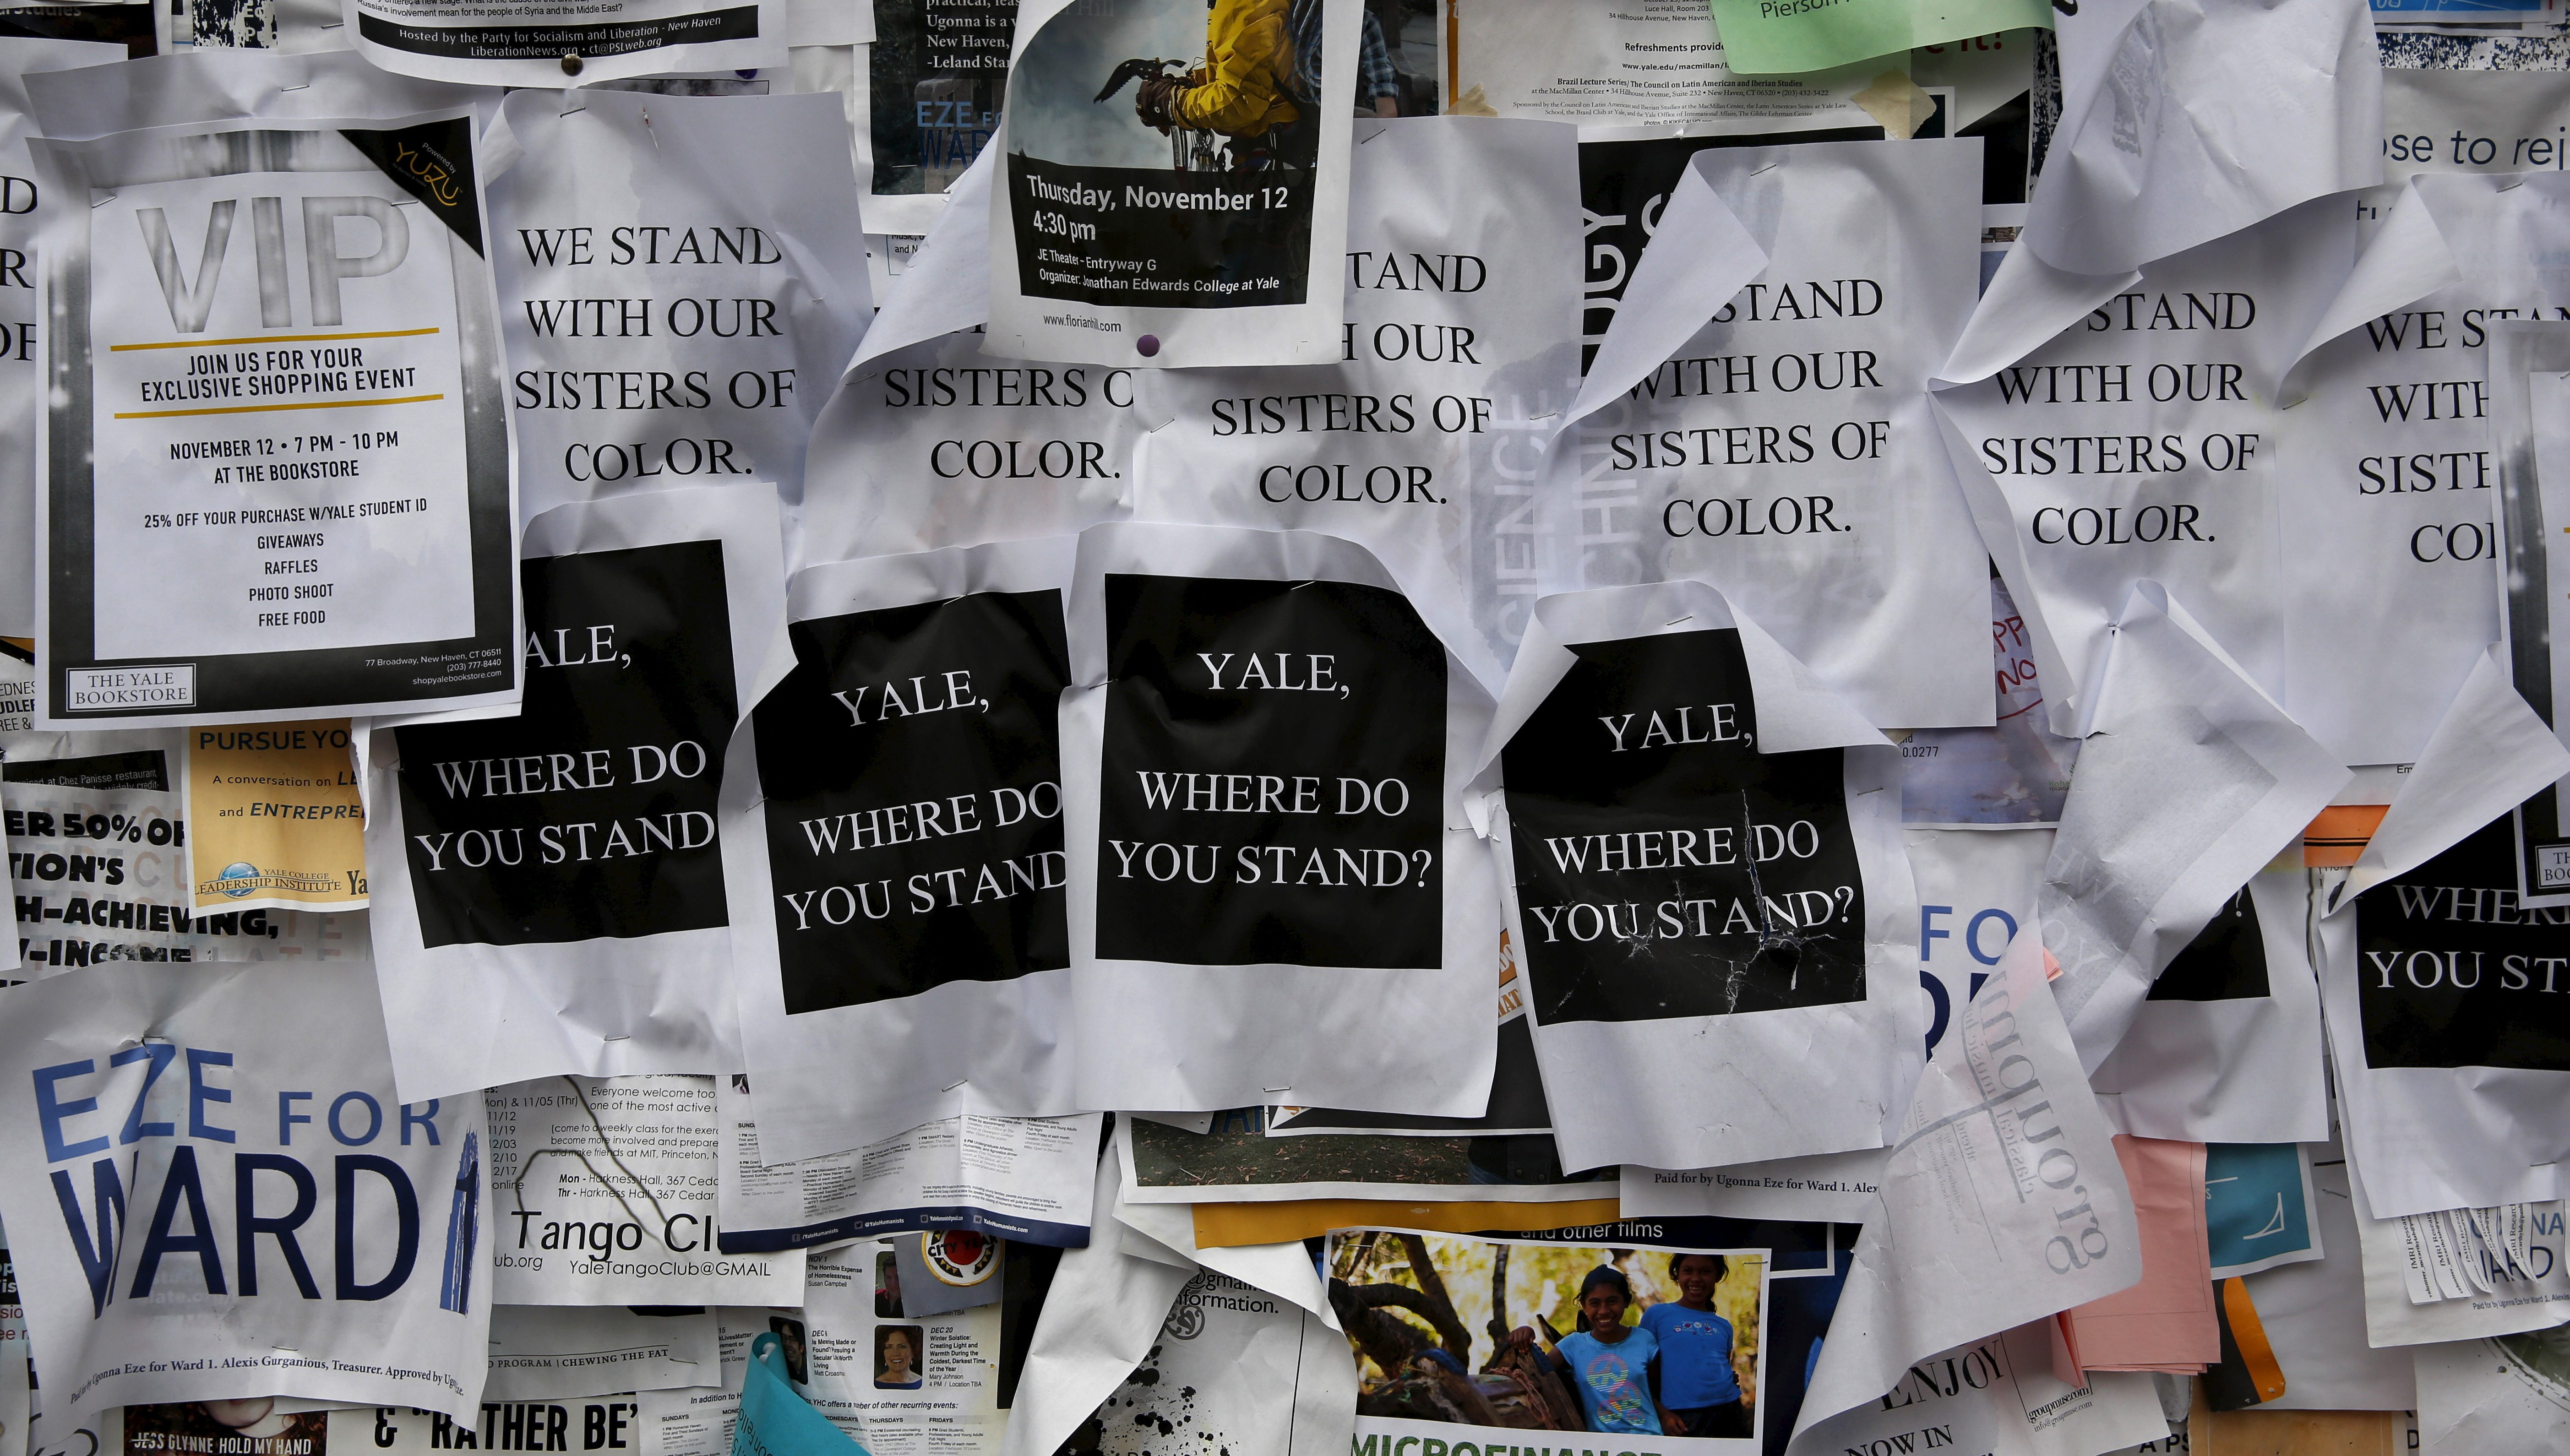 Flyers are seen posted on a college noticeboard on campus at Yale University in New Haven, Connecticut November 12, 2015. More than 1,000 students, professors and staff at Yale University gathered on Wednesday to discuss race and diversity at the elite Ivy League school, amid a wave of demonstrations at U.S. colleges over the treatment of minority students. REUTERS/Shannon Stapleto - RTS6PPX